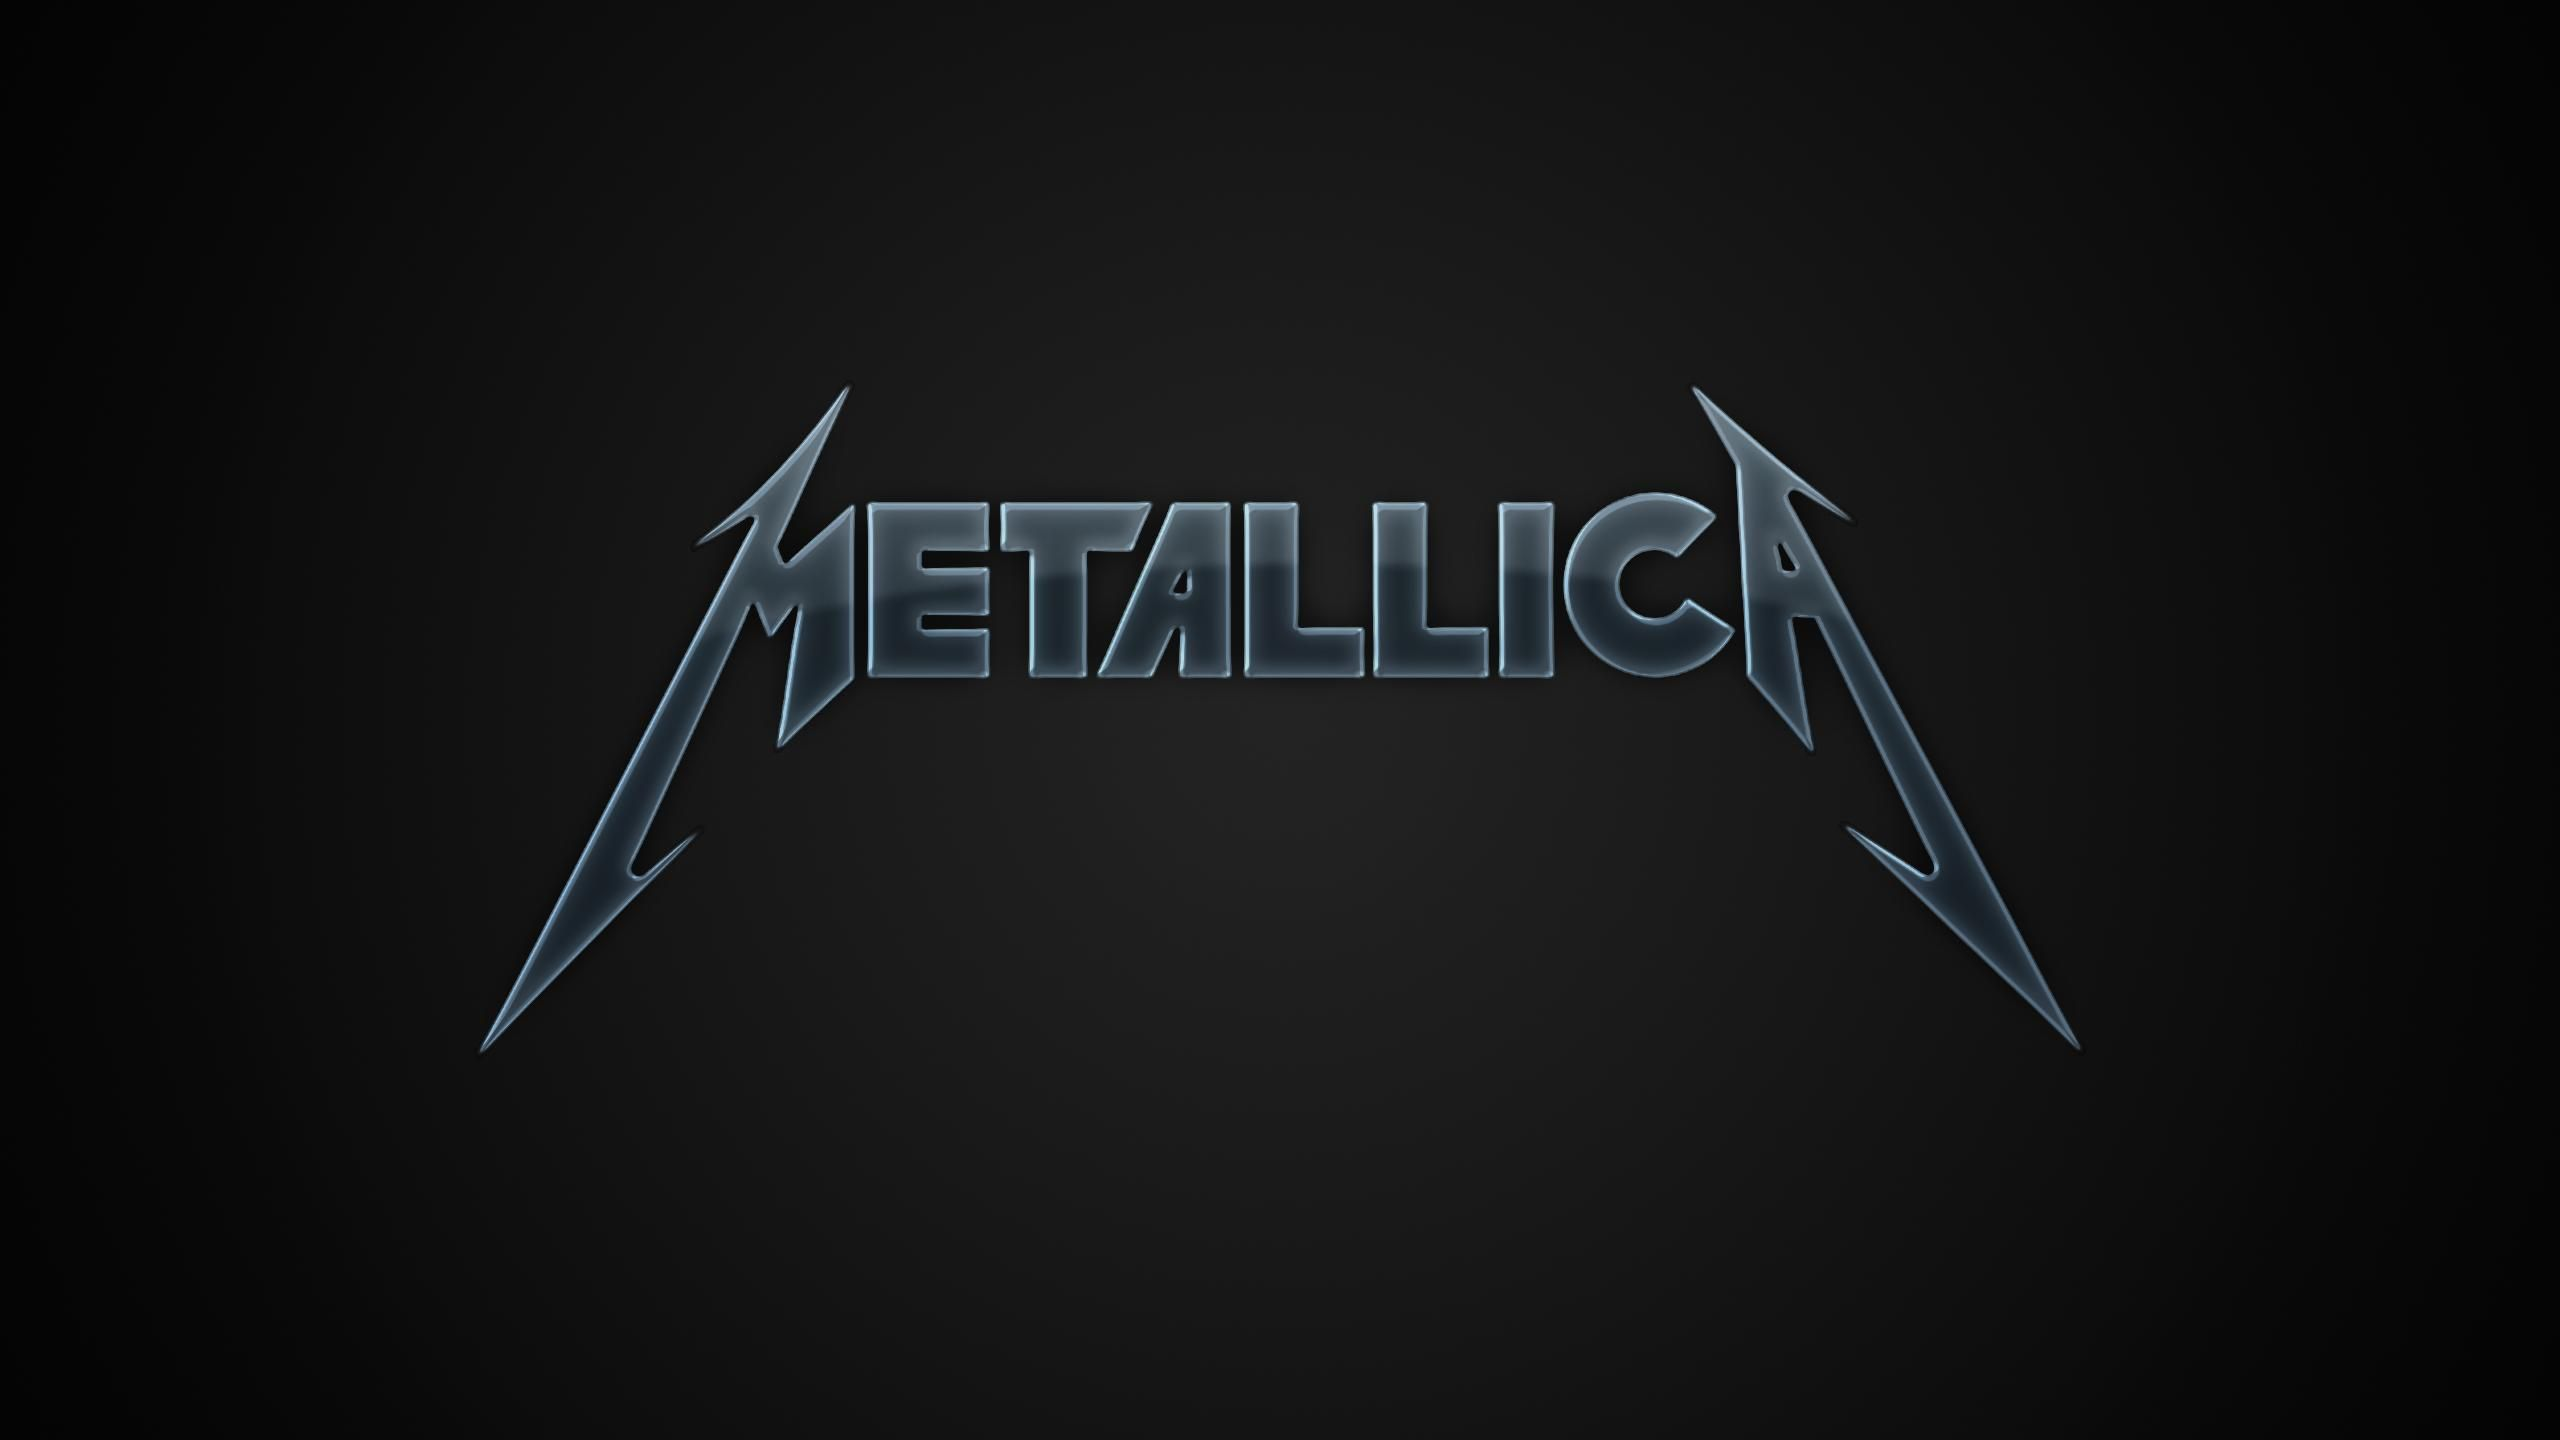 S Logo Wallpaper Free Download Metallica Logo Wallpap...